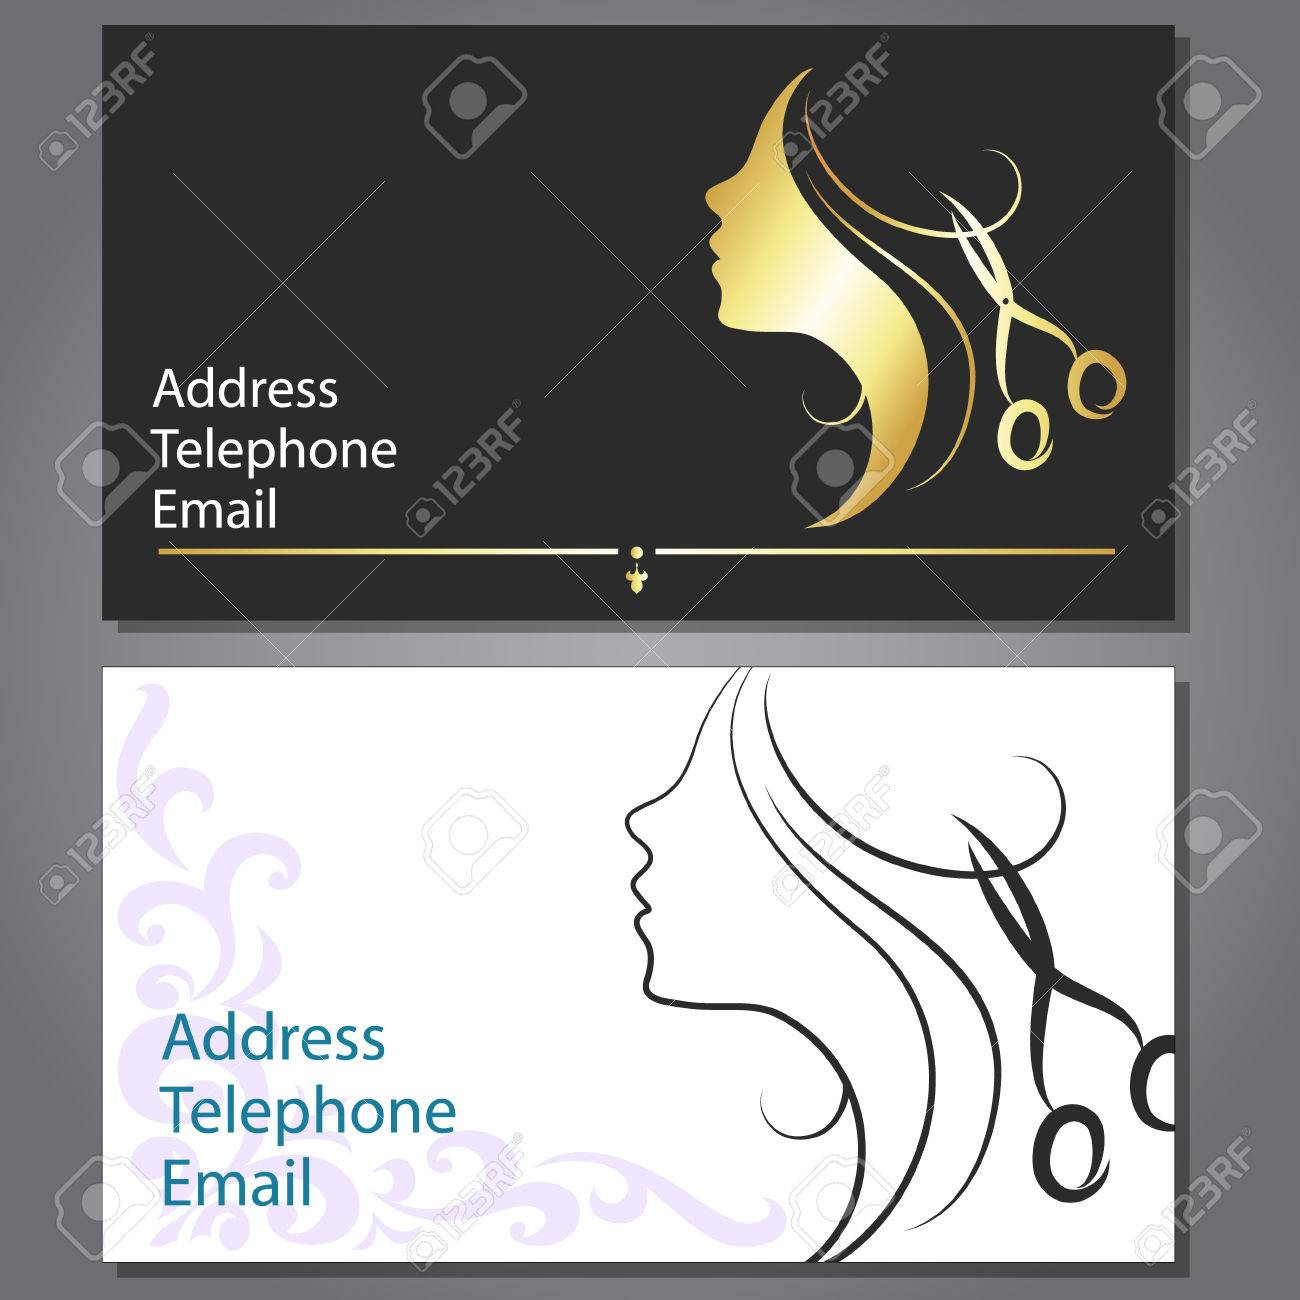 Design business card for hair and beauty salon royalty free cliparts design business card for hair and beauty salon stock vector 27204749 colourmoves Choice Image